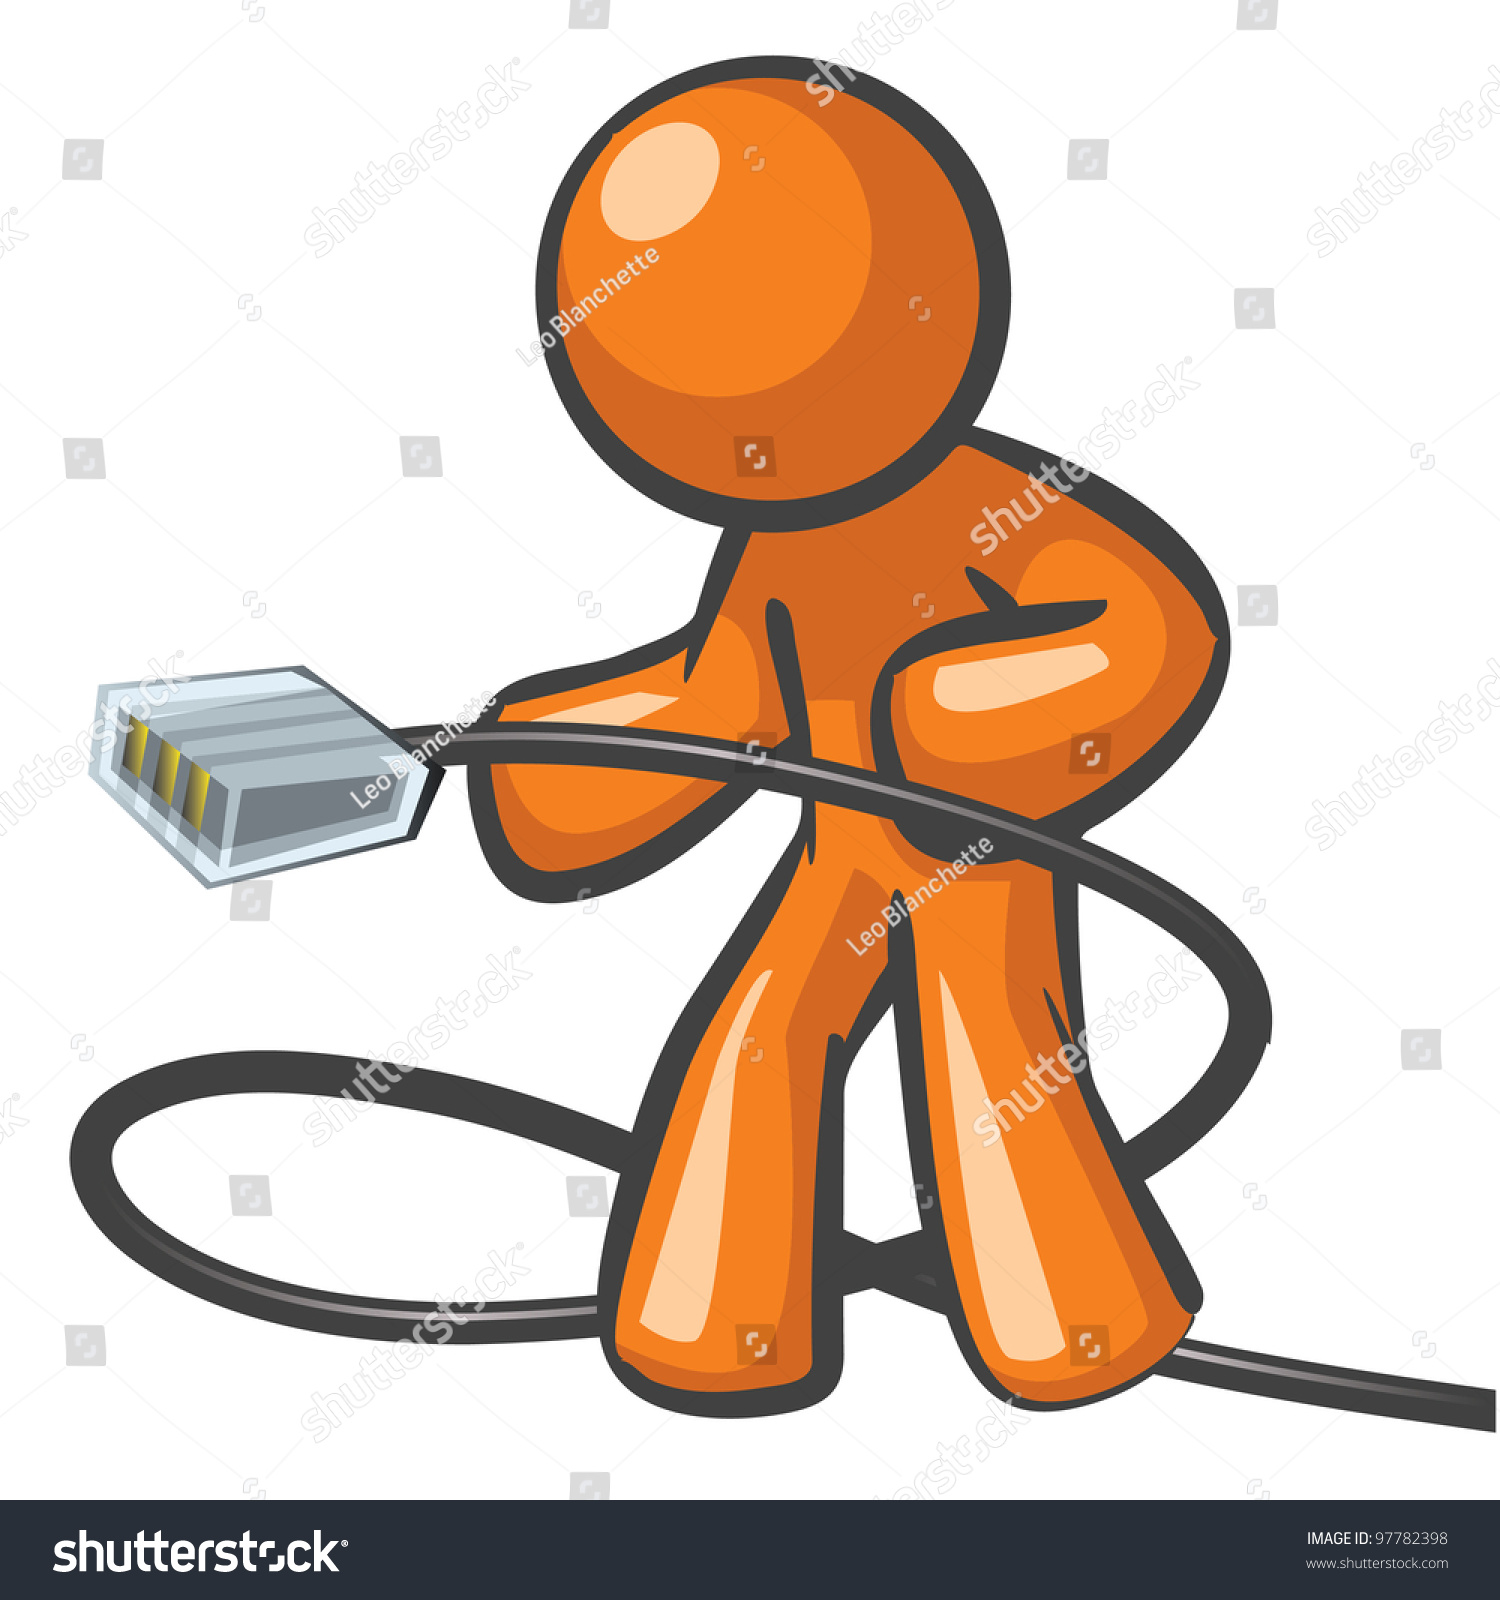 Orange Connexion Internet Orange Man Plugging Network Cable Ready Stock Vector Royalty Free